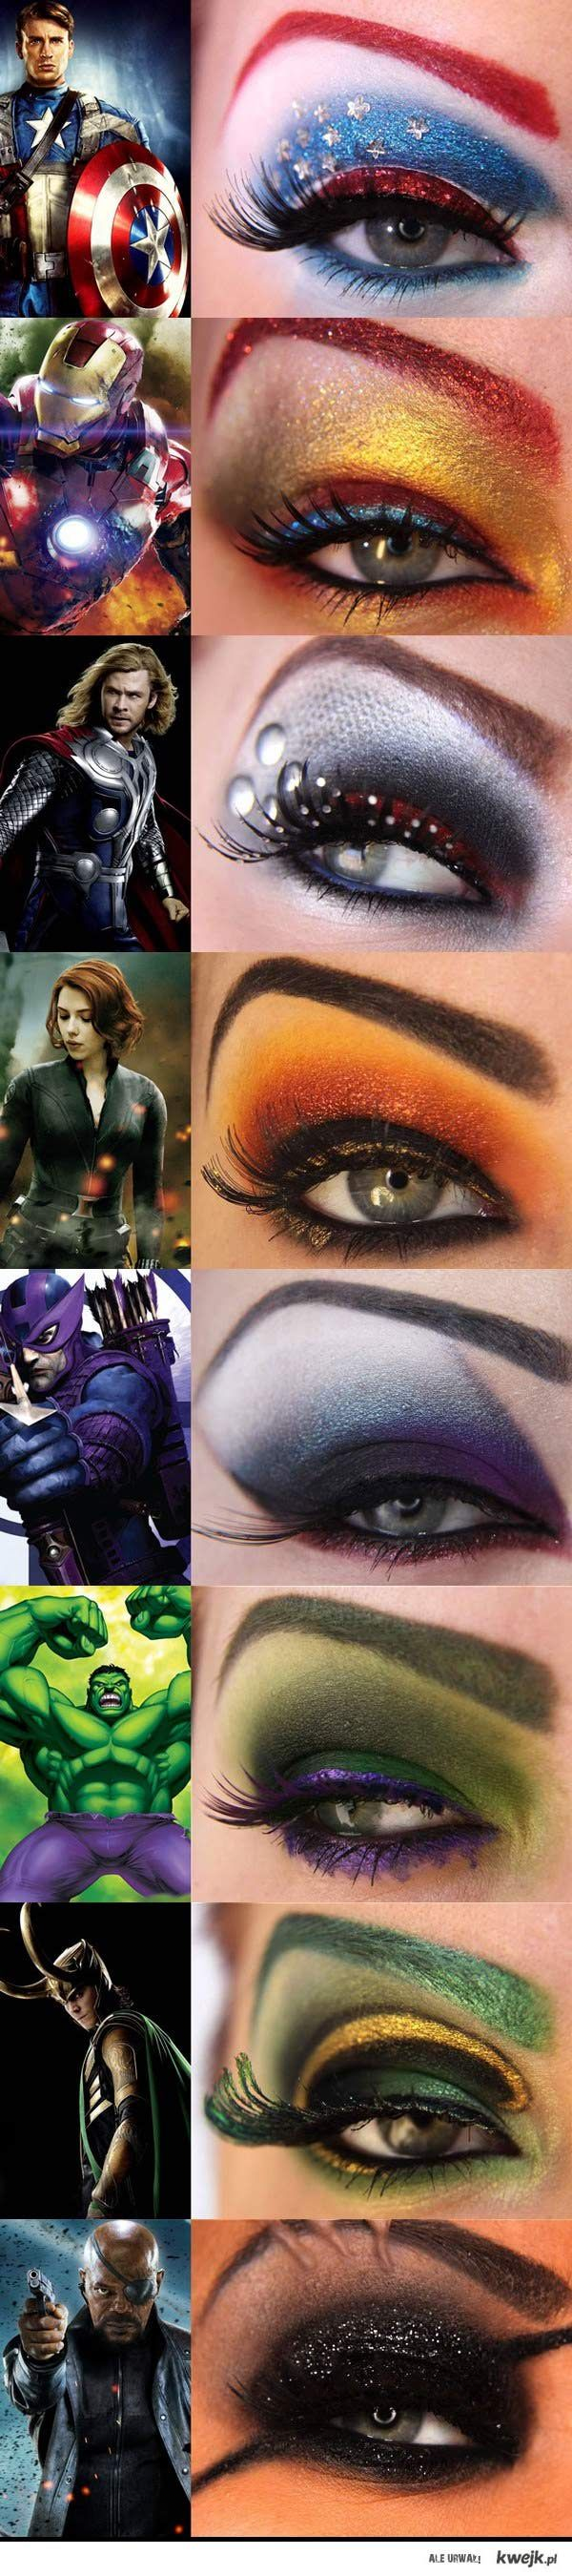 the avengers makeup #makeup #superhero #avengers #beauty #tips